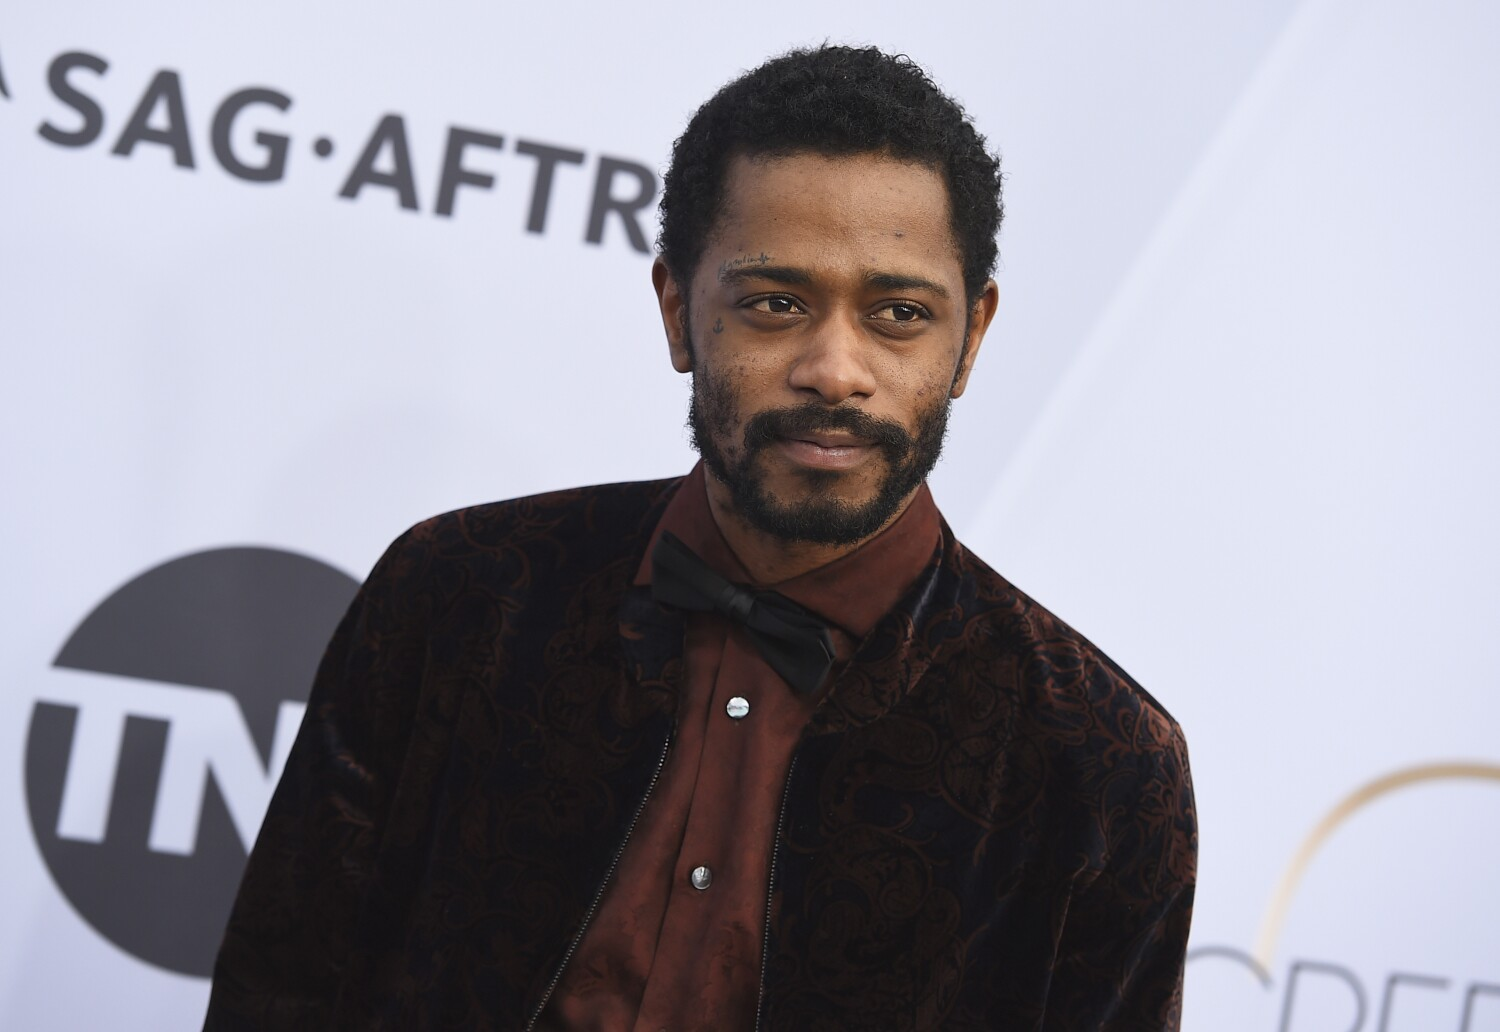 LaKeith Stanfield says he is